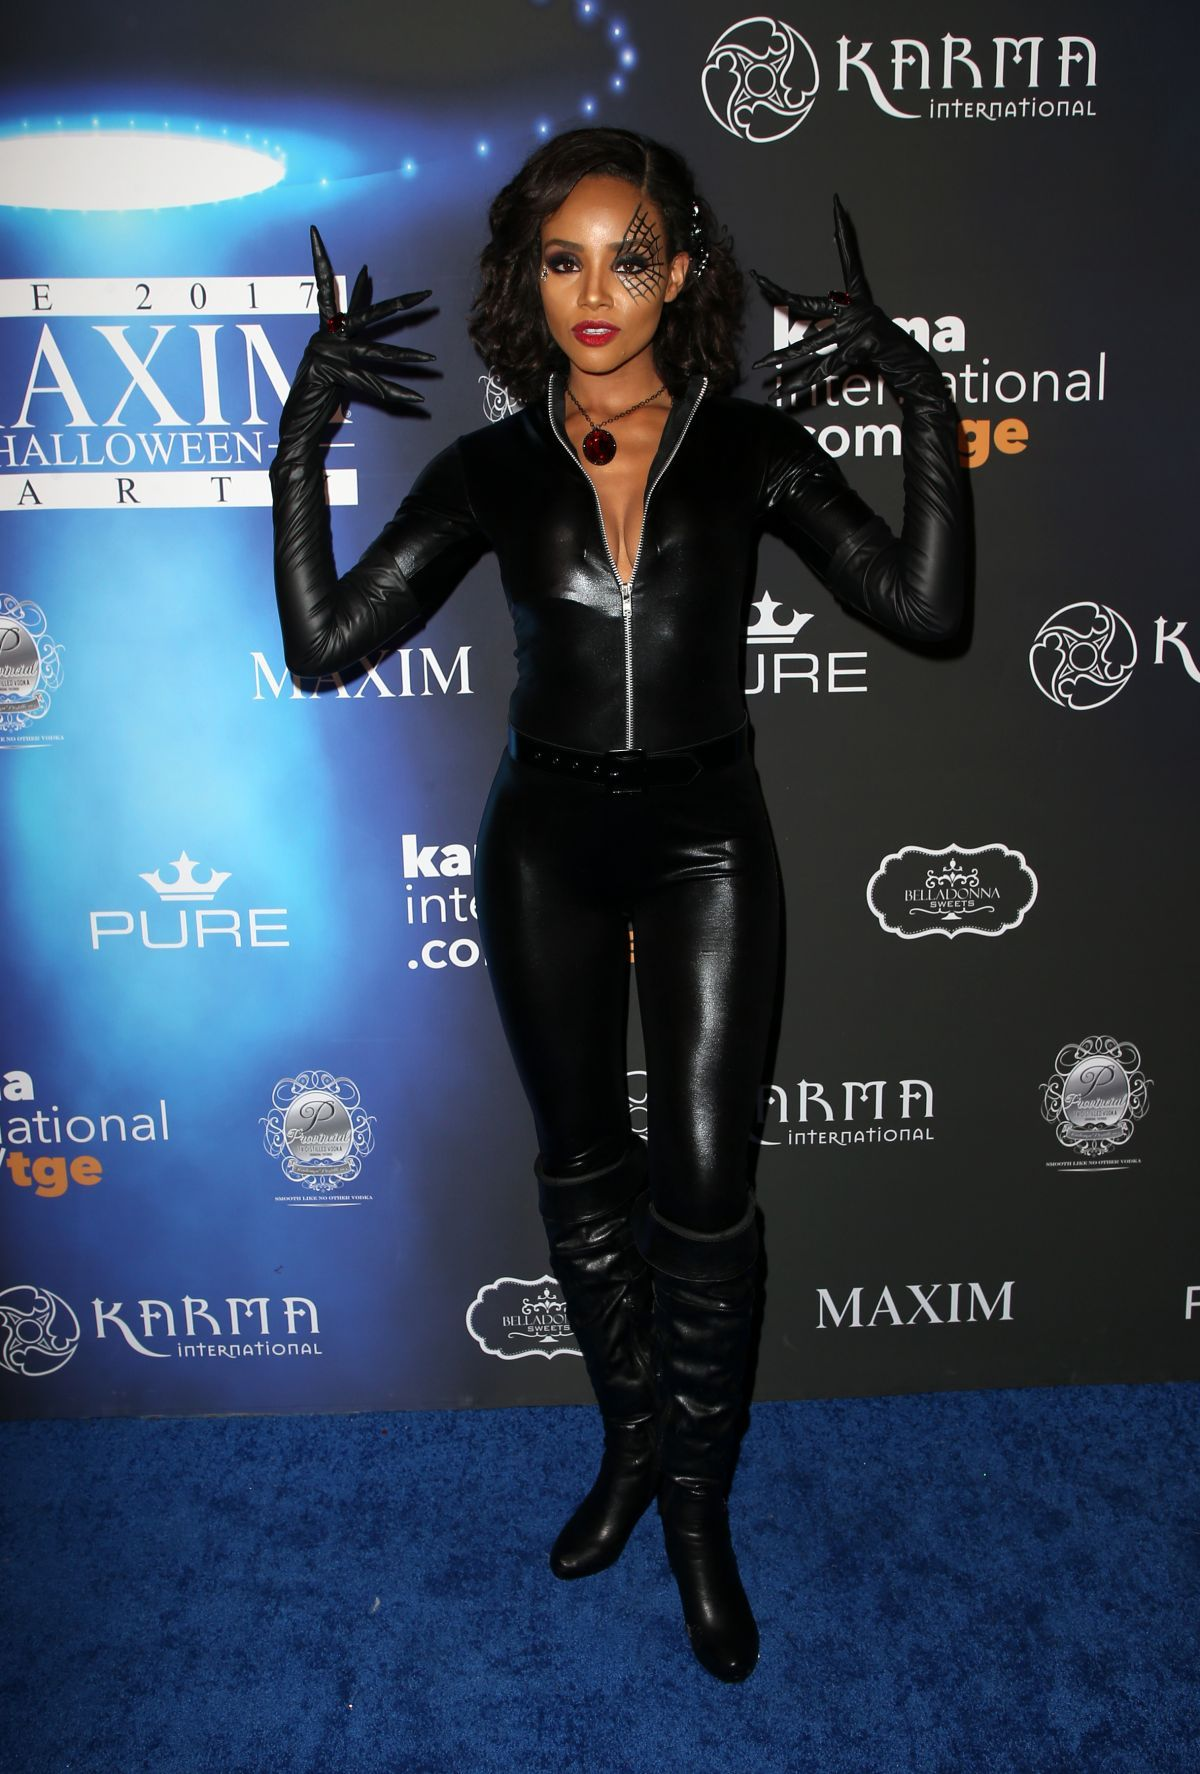 Meagan Tandy In Skintight Black Catsuit - 2017 Maxim Halloween Party in Los Angeles